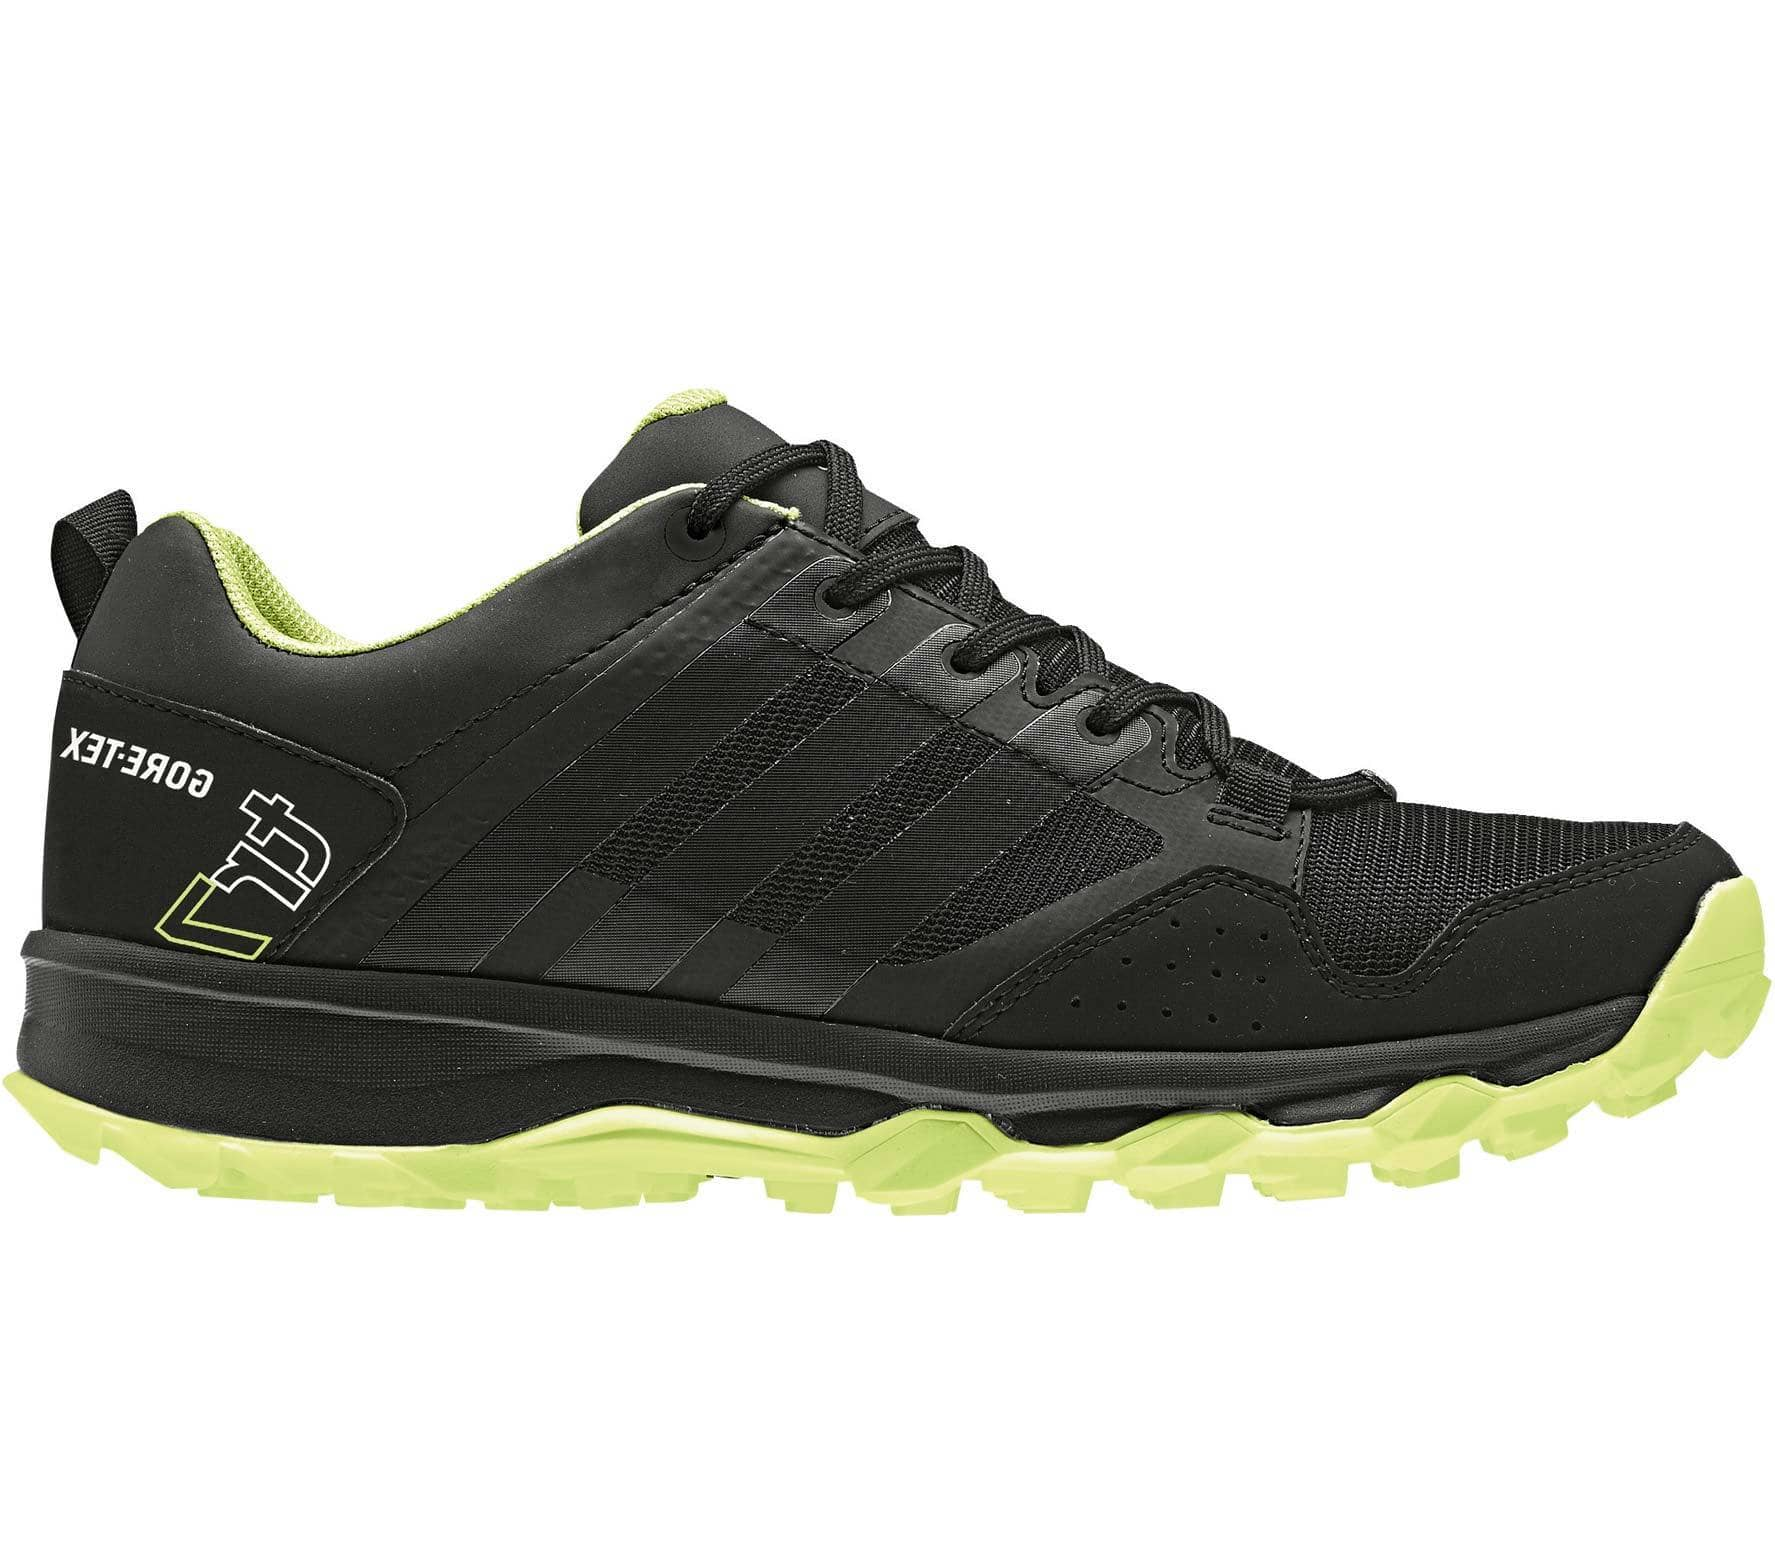 adidas Kanadia 7 TR GTX women's running shoes Women